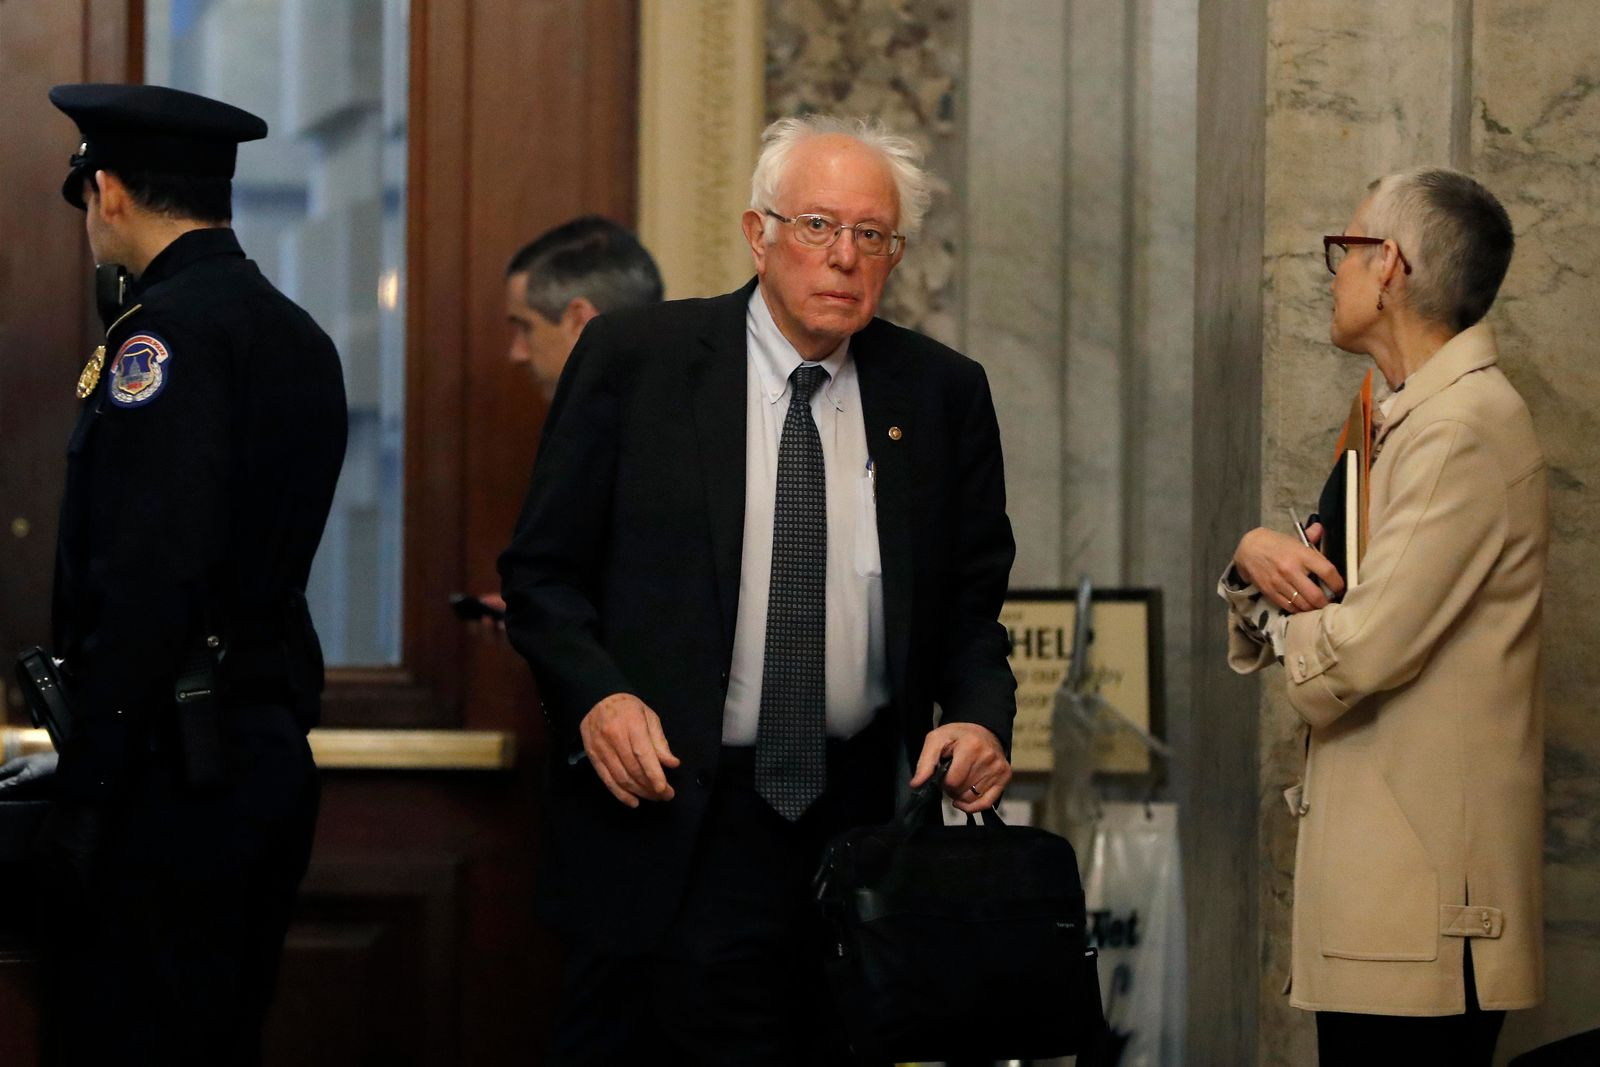 Sen. Bernie Sanders, I-Vt., arrives at the Capitol in Washington during the impeachment trial of President Donald Trump on charges of abuse of power and obstruction of Congress, Saturday, Jan. 25, 2020. (AP Photo/Julio Cortez)